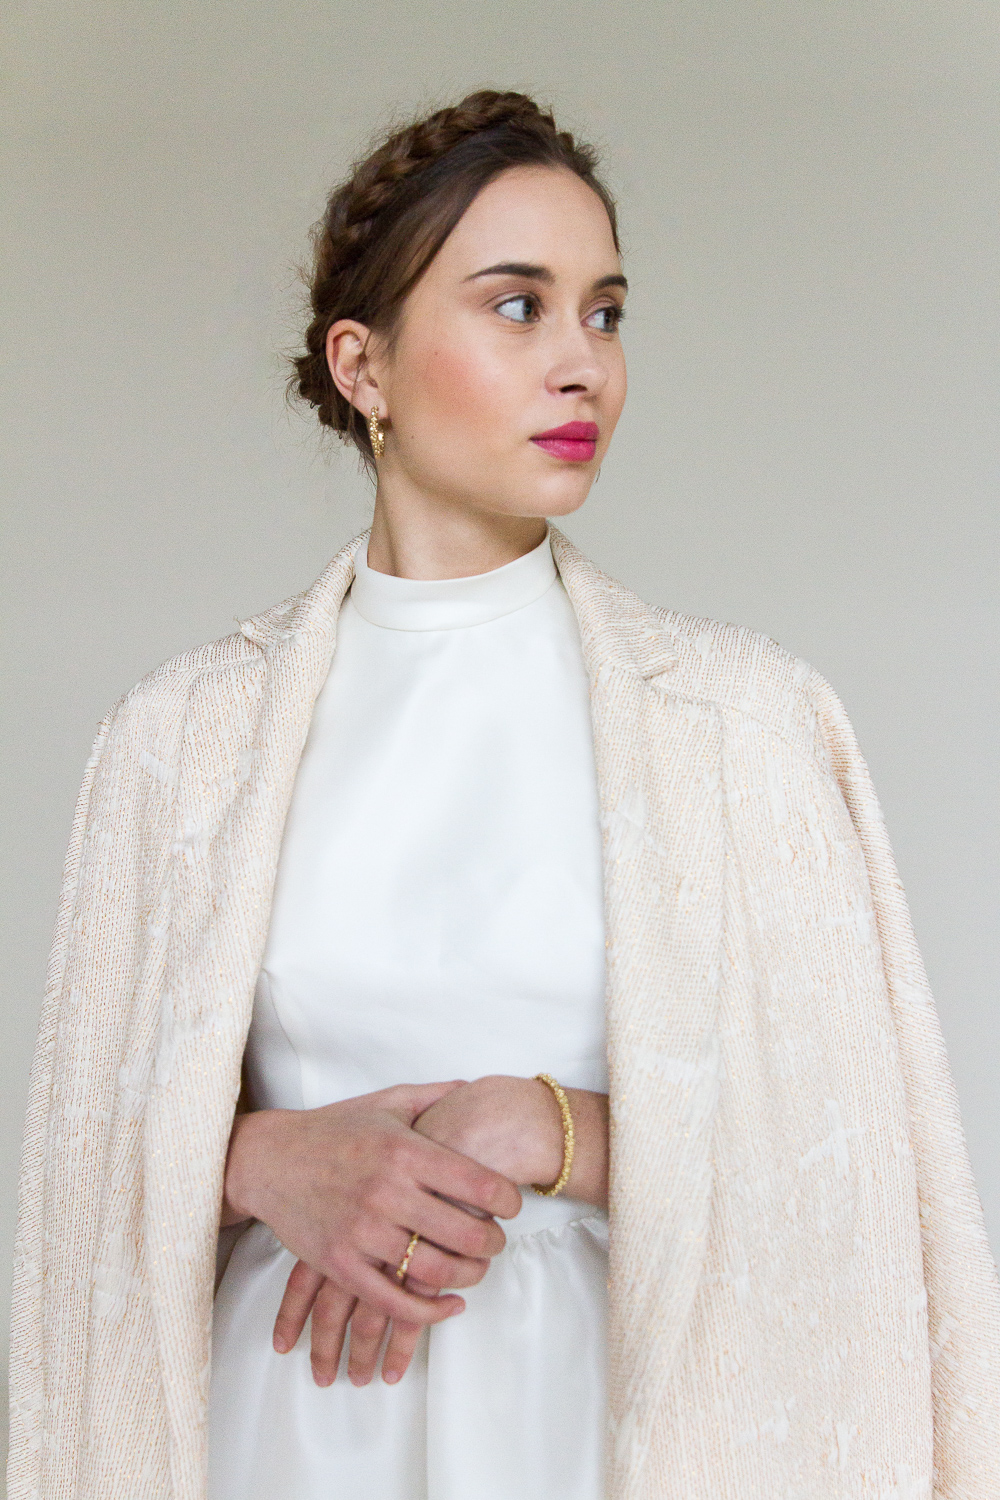 bessie-manteau-robe-de-mariee-valentine-avoh-wedding-dress-coat-detail.jpg